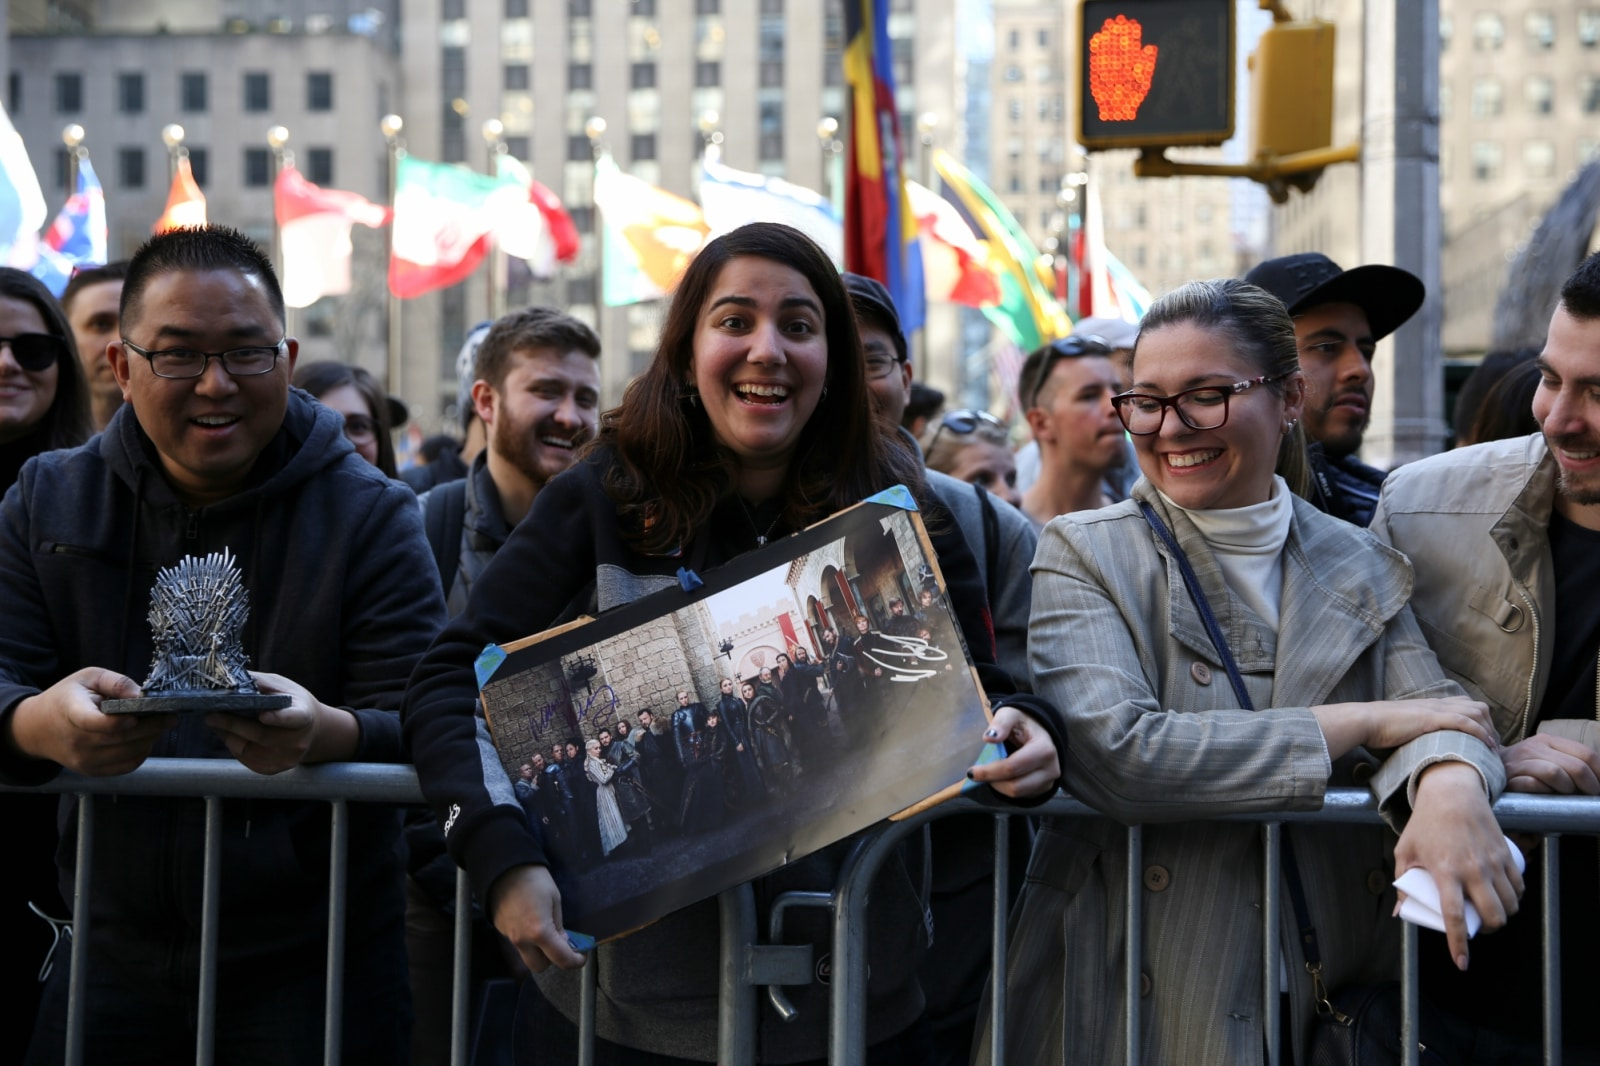 Fans wait for actors to arrive for the premiere of the final season of